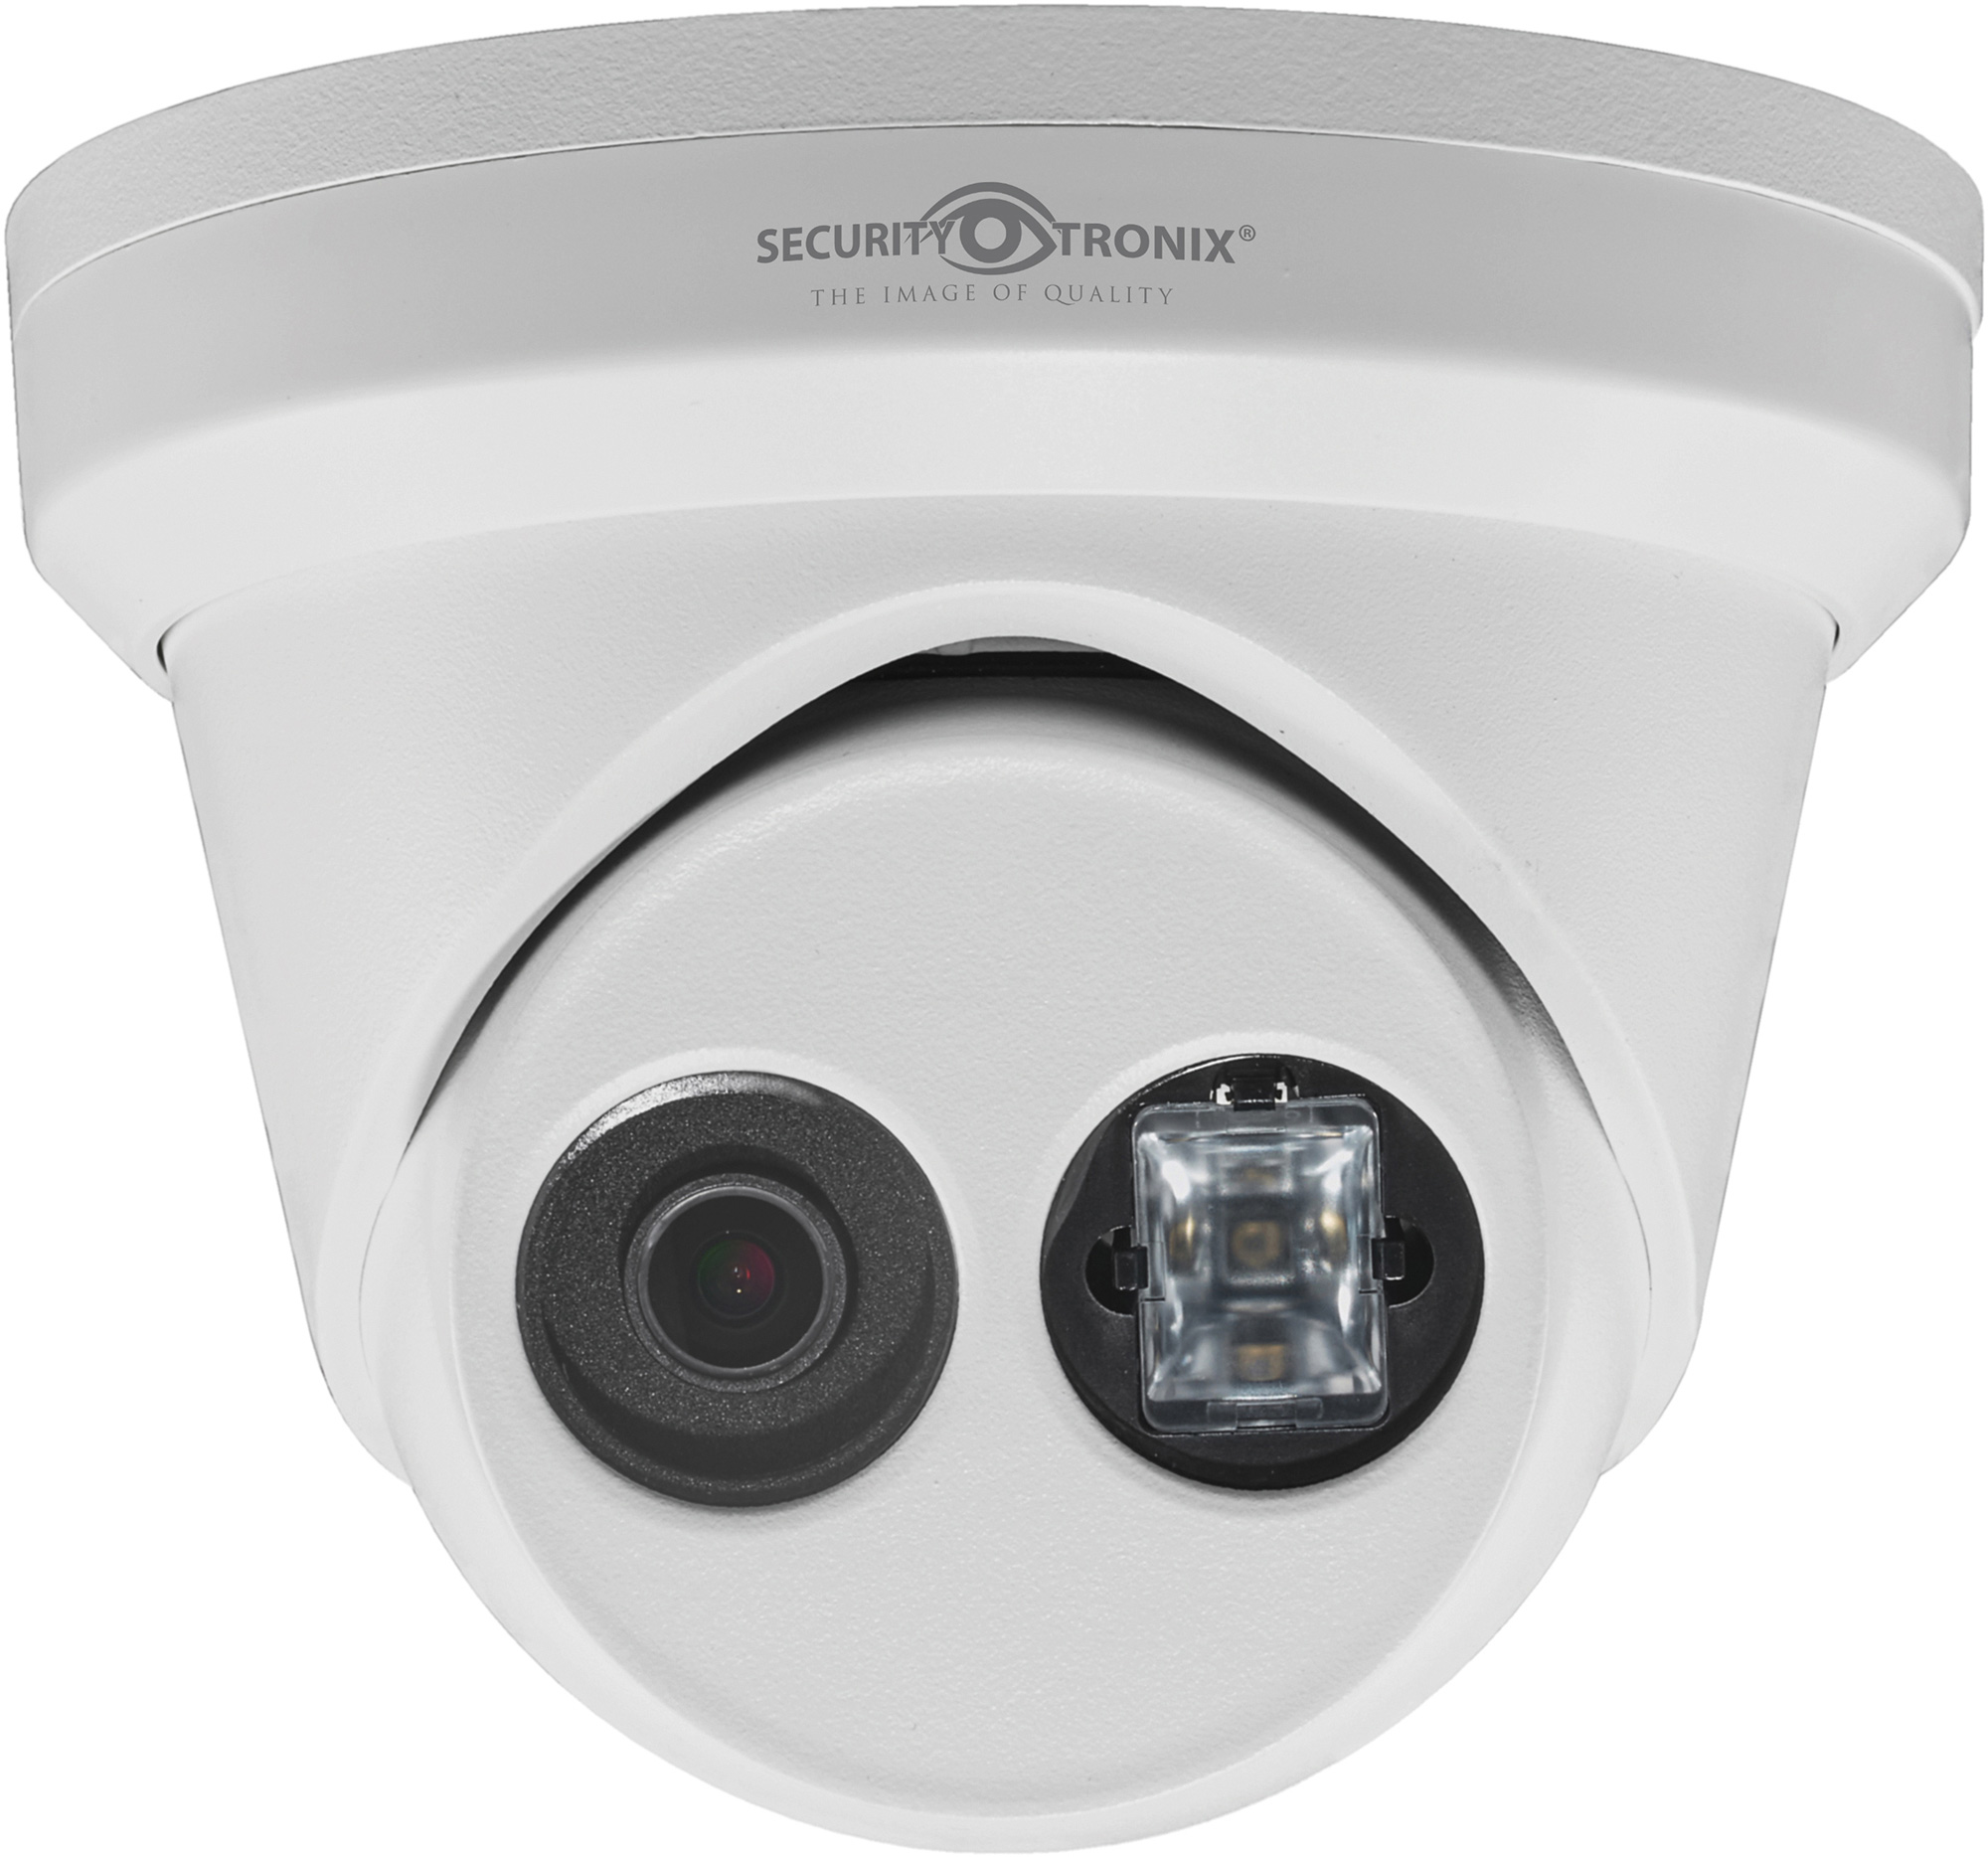 SecurityTronix ST-IP4FTD-2.8 4MP IP Fixed Lens Turret Dome Camera - White SCT-ST-IP4FTD-28